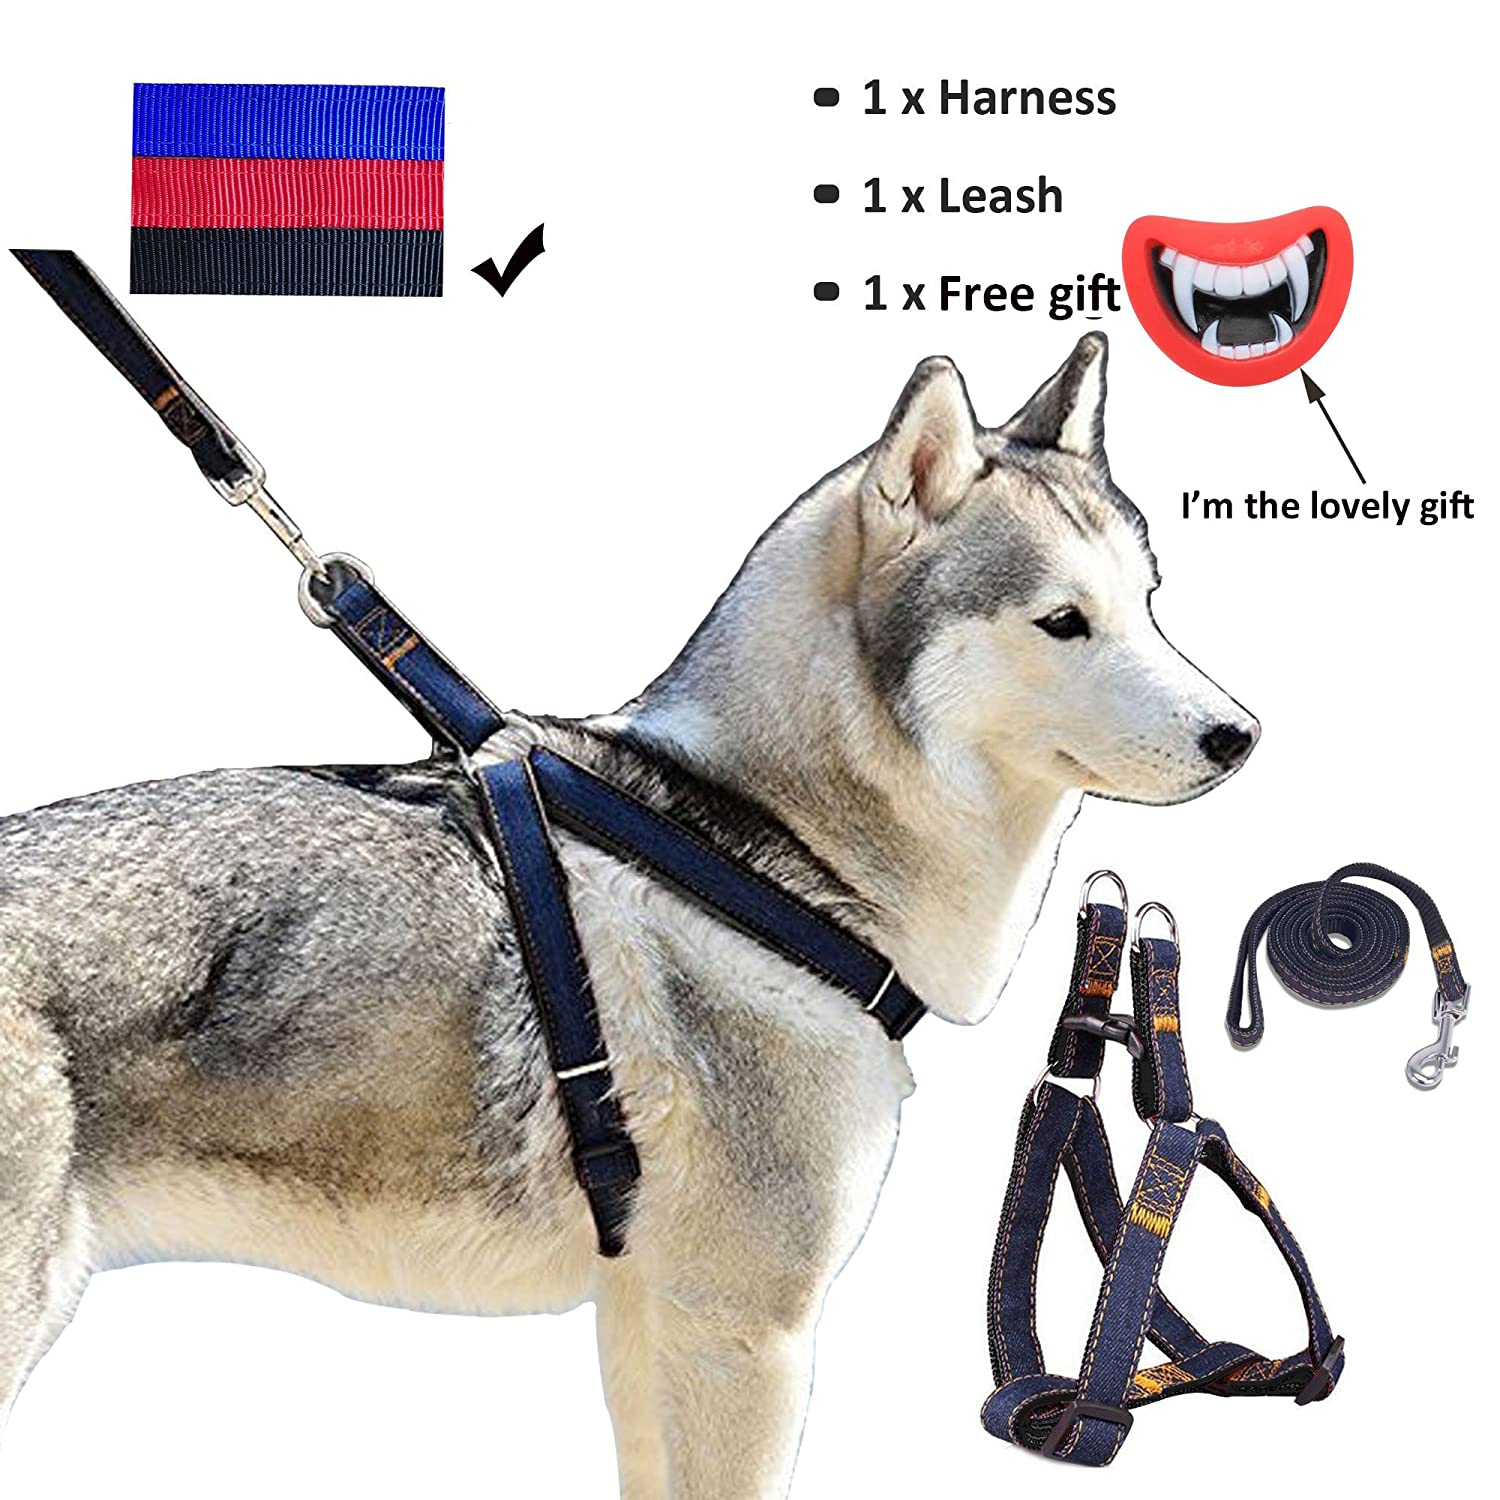 Pet Supplies : Whippy Durable Dog Leash Harness for Dogs, Heavy Duty